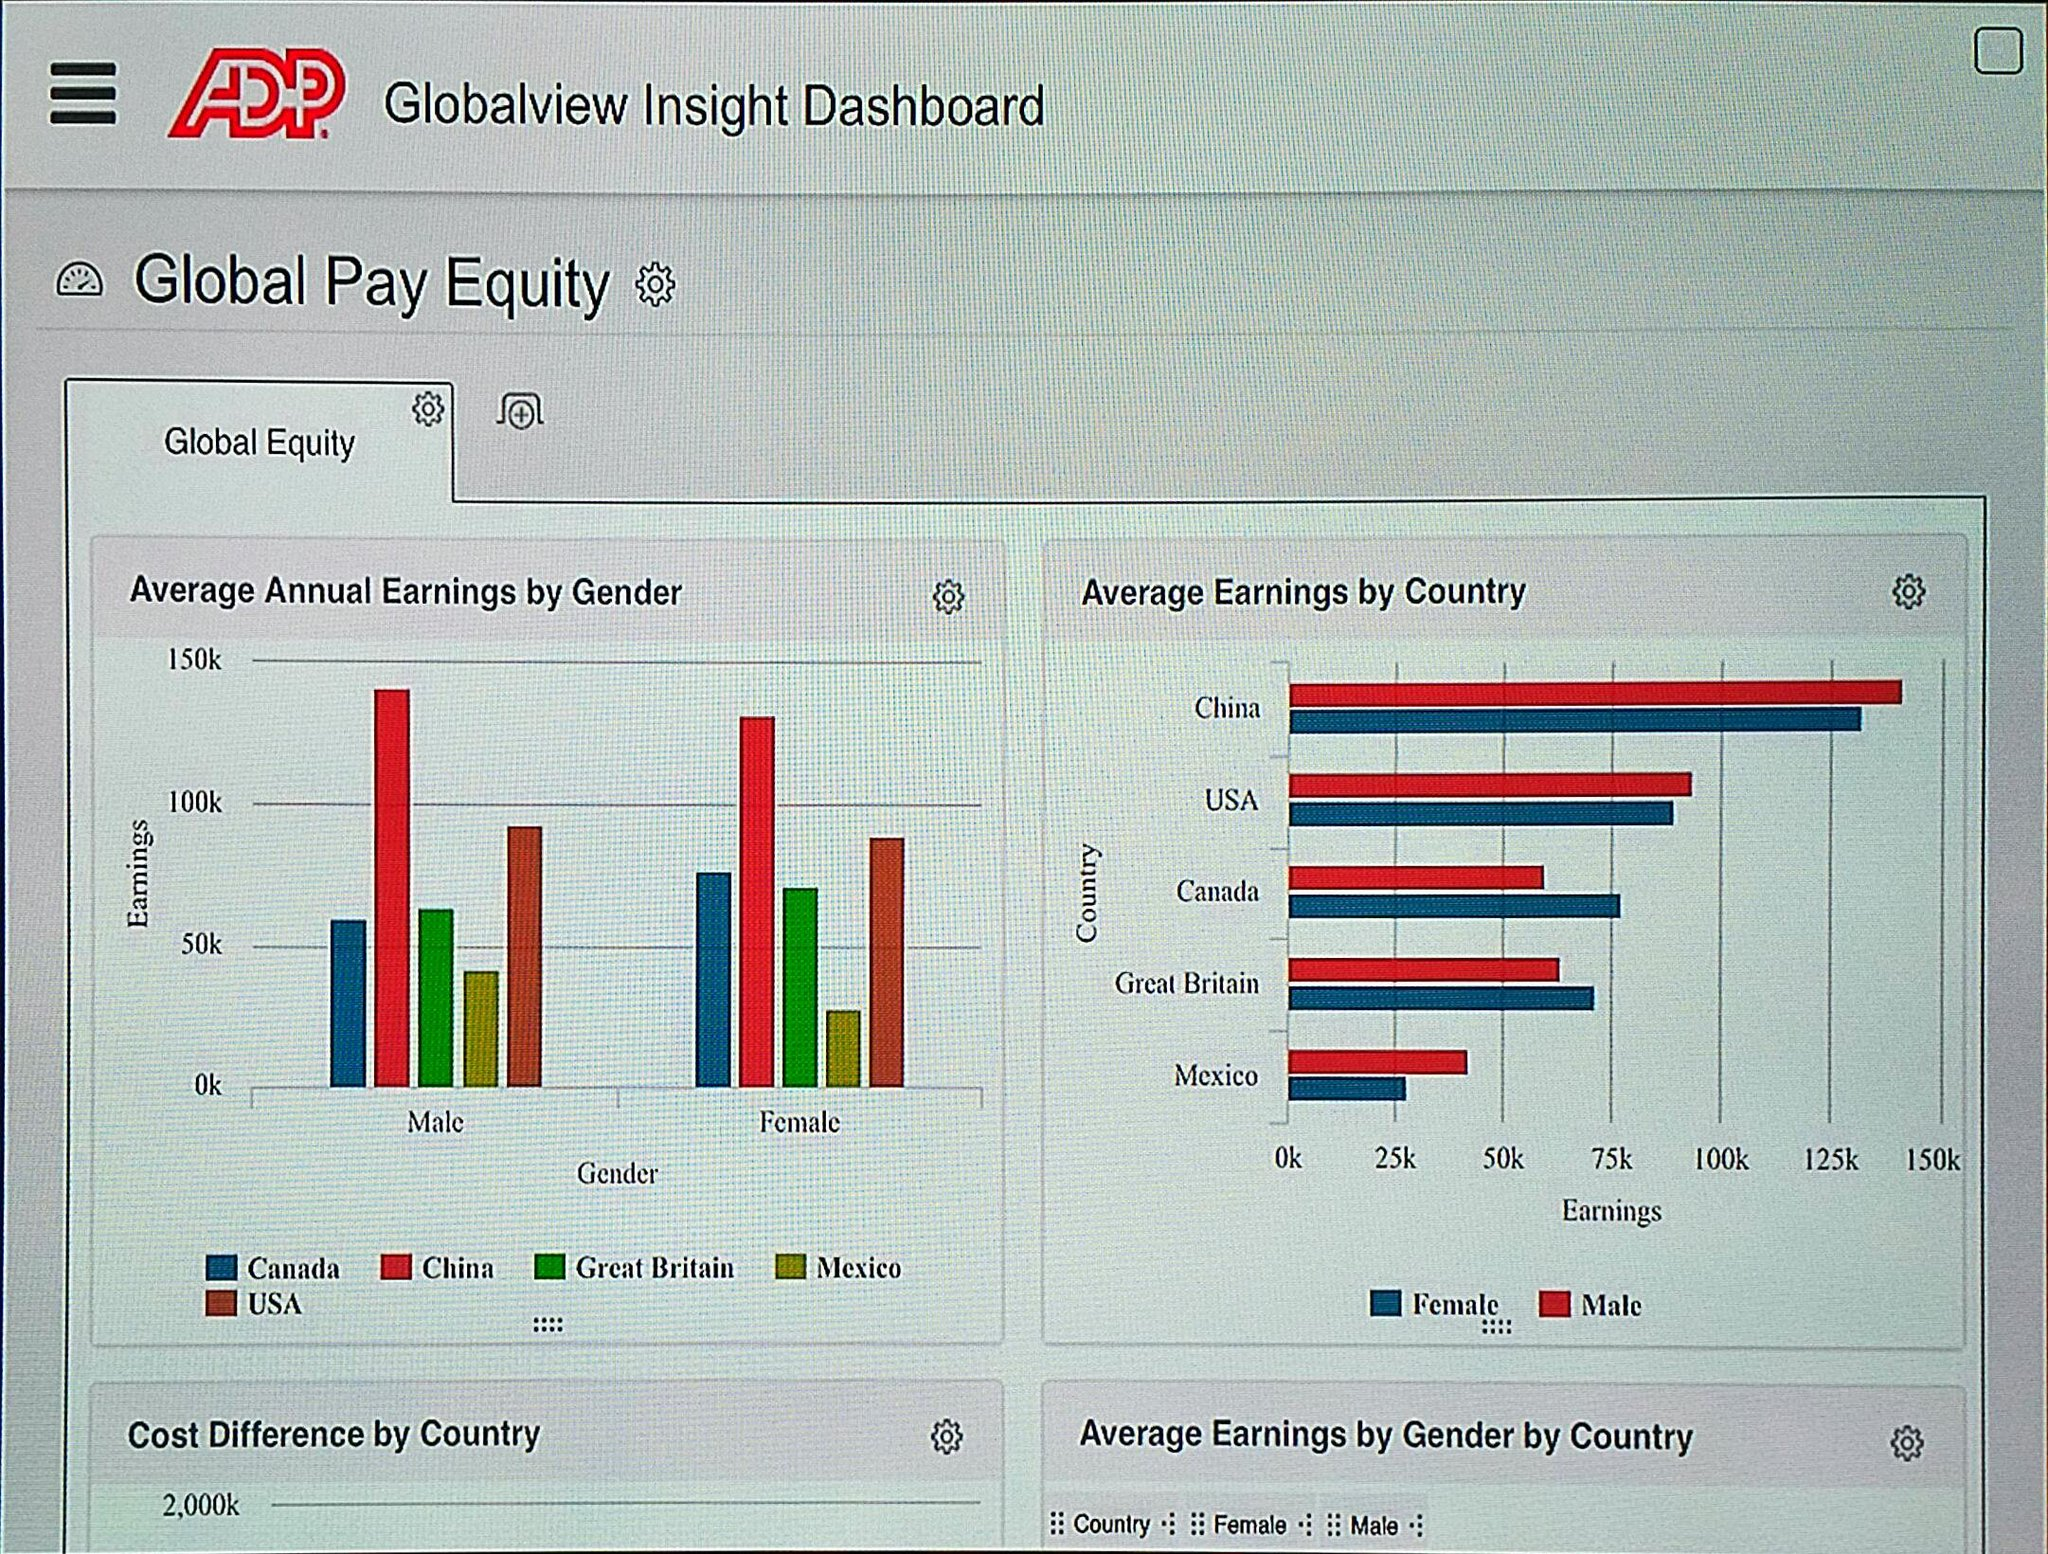 Looking at @ADP Global view -  Insight Dashboards -  Global Pay Equity #ADPReThink https://t.co/fOCYzf87ik